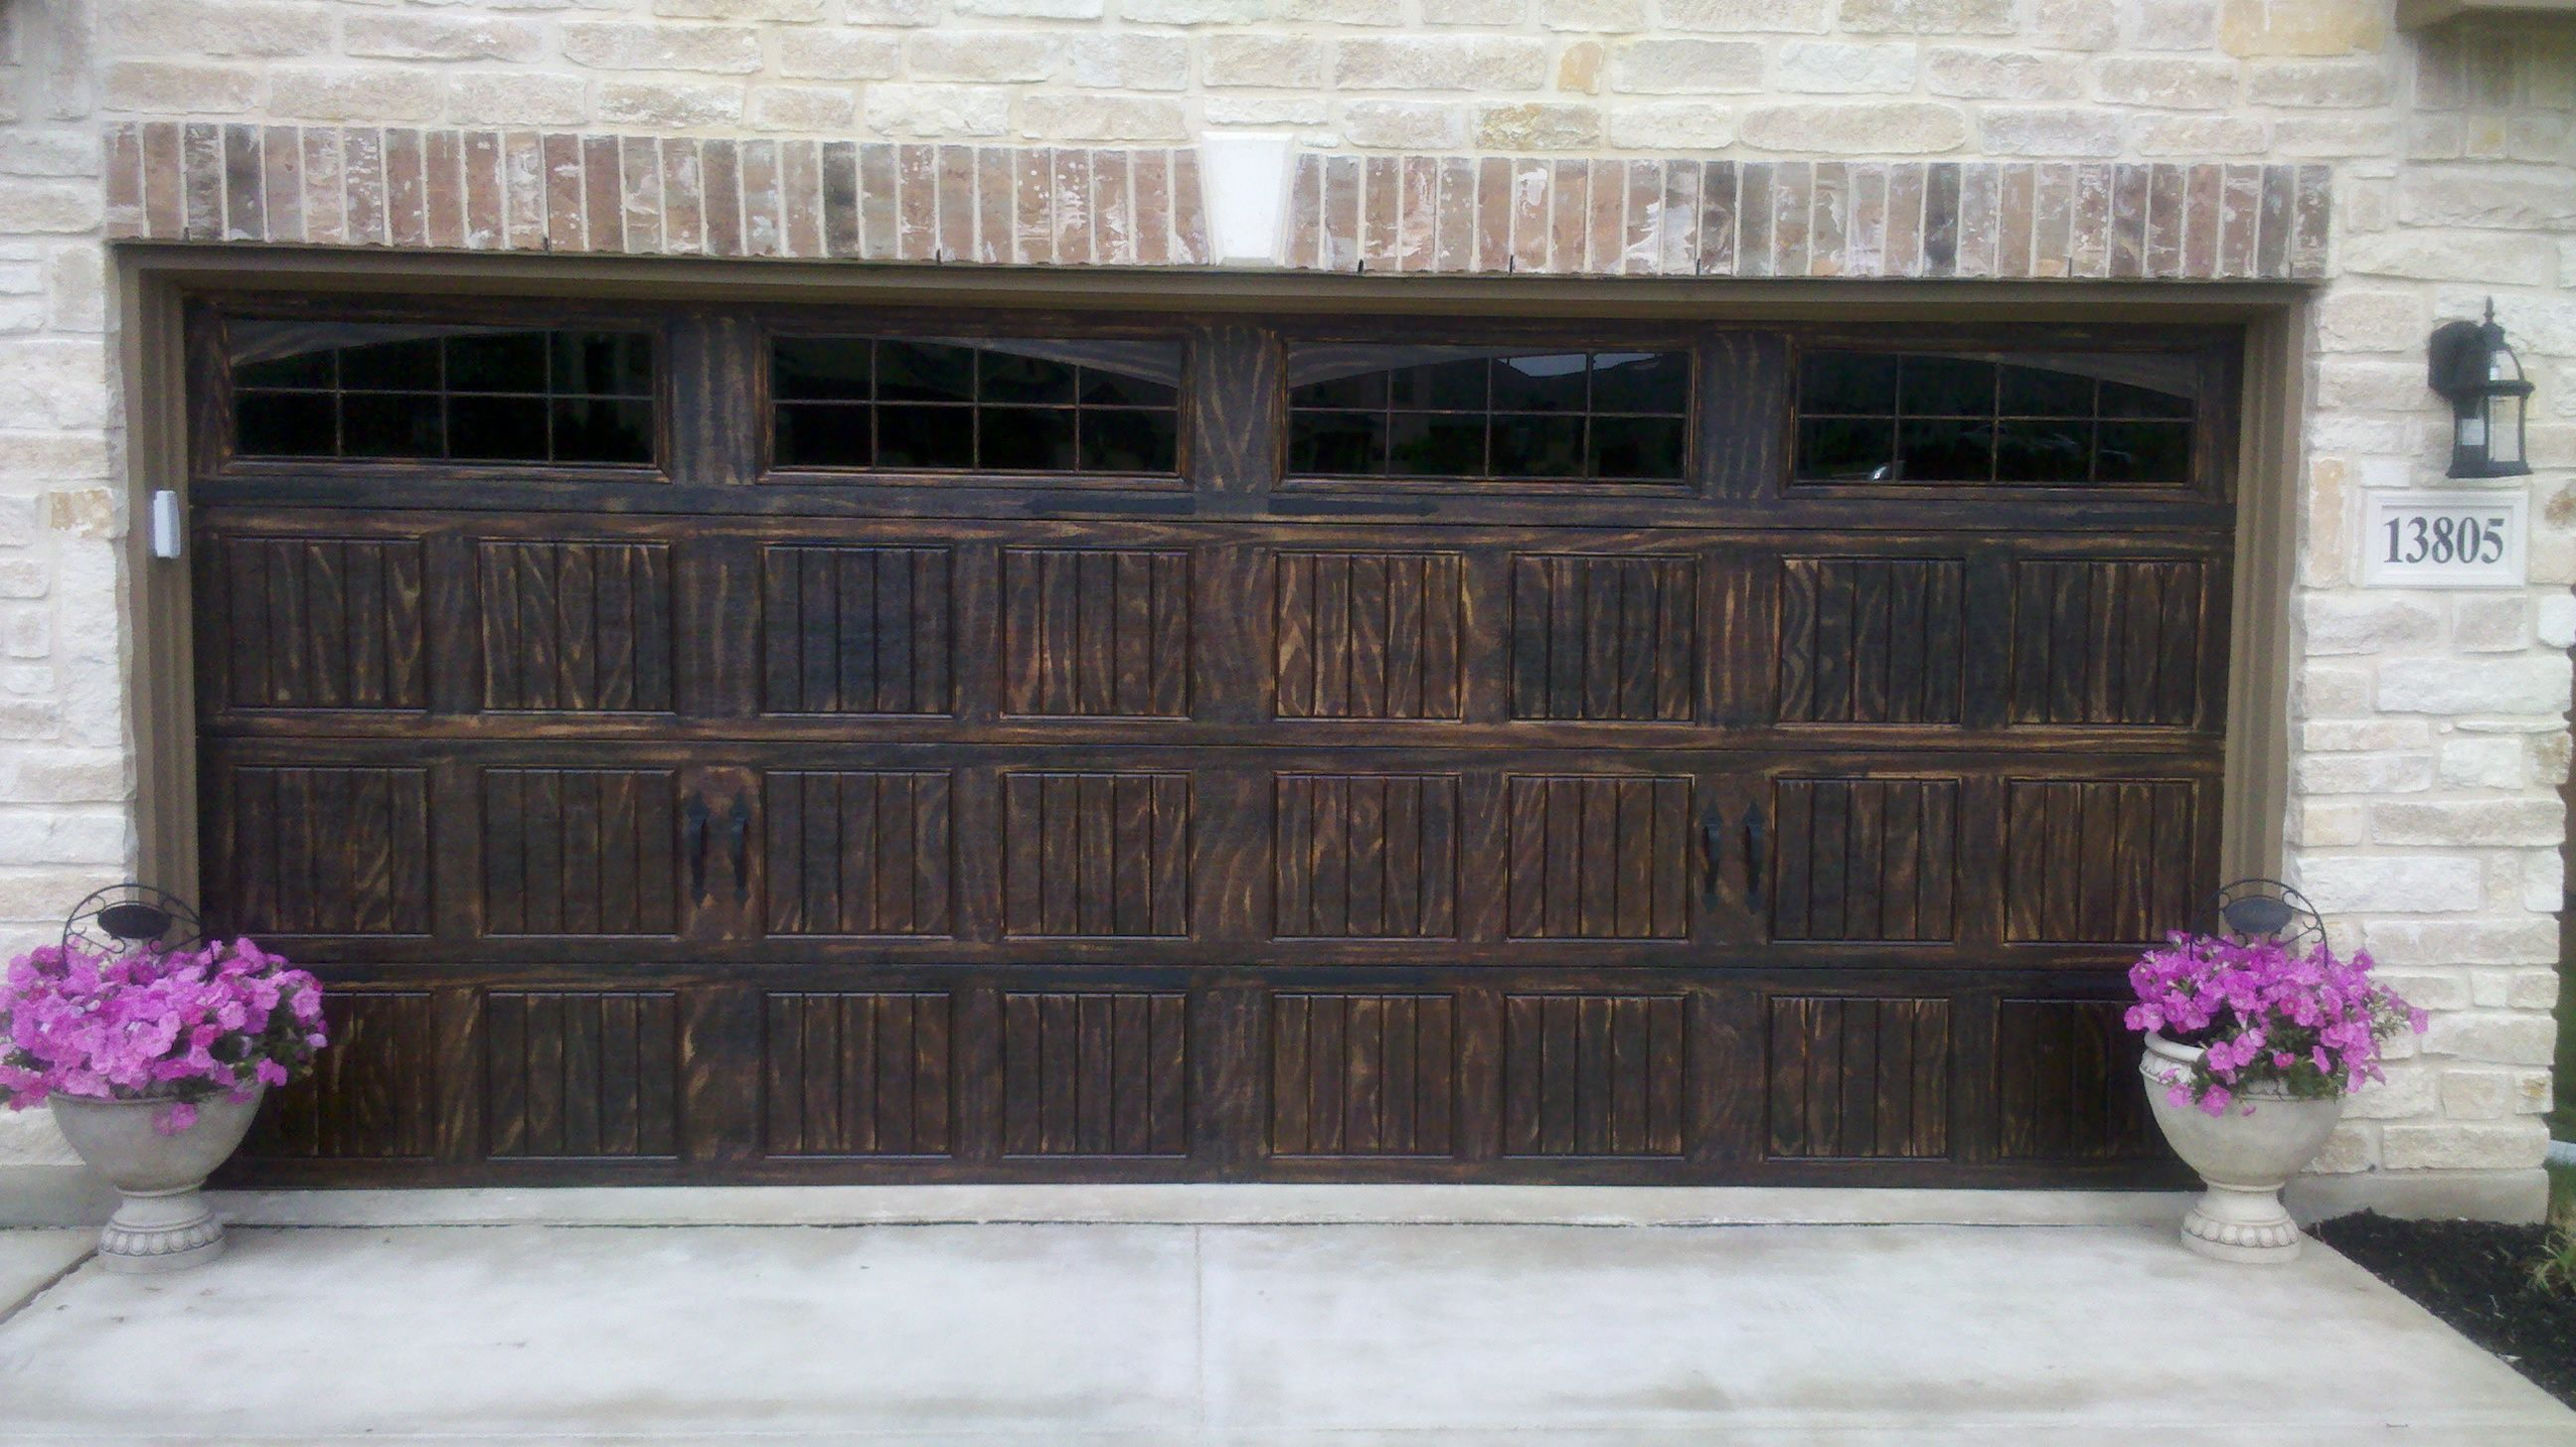 Wood Grain Painting On Steel Garage Door 16x7 Wayne Dalton 9100 Sonoma Style With Top Glass Glass Garage Door Cost Garage Doors Wayne Dalton Garage Doors